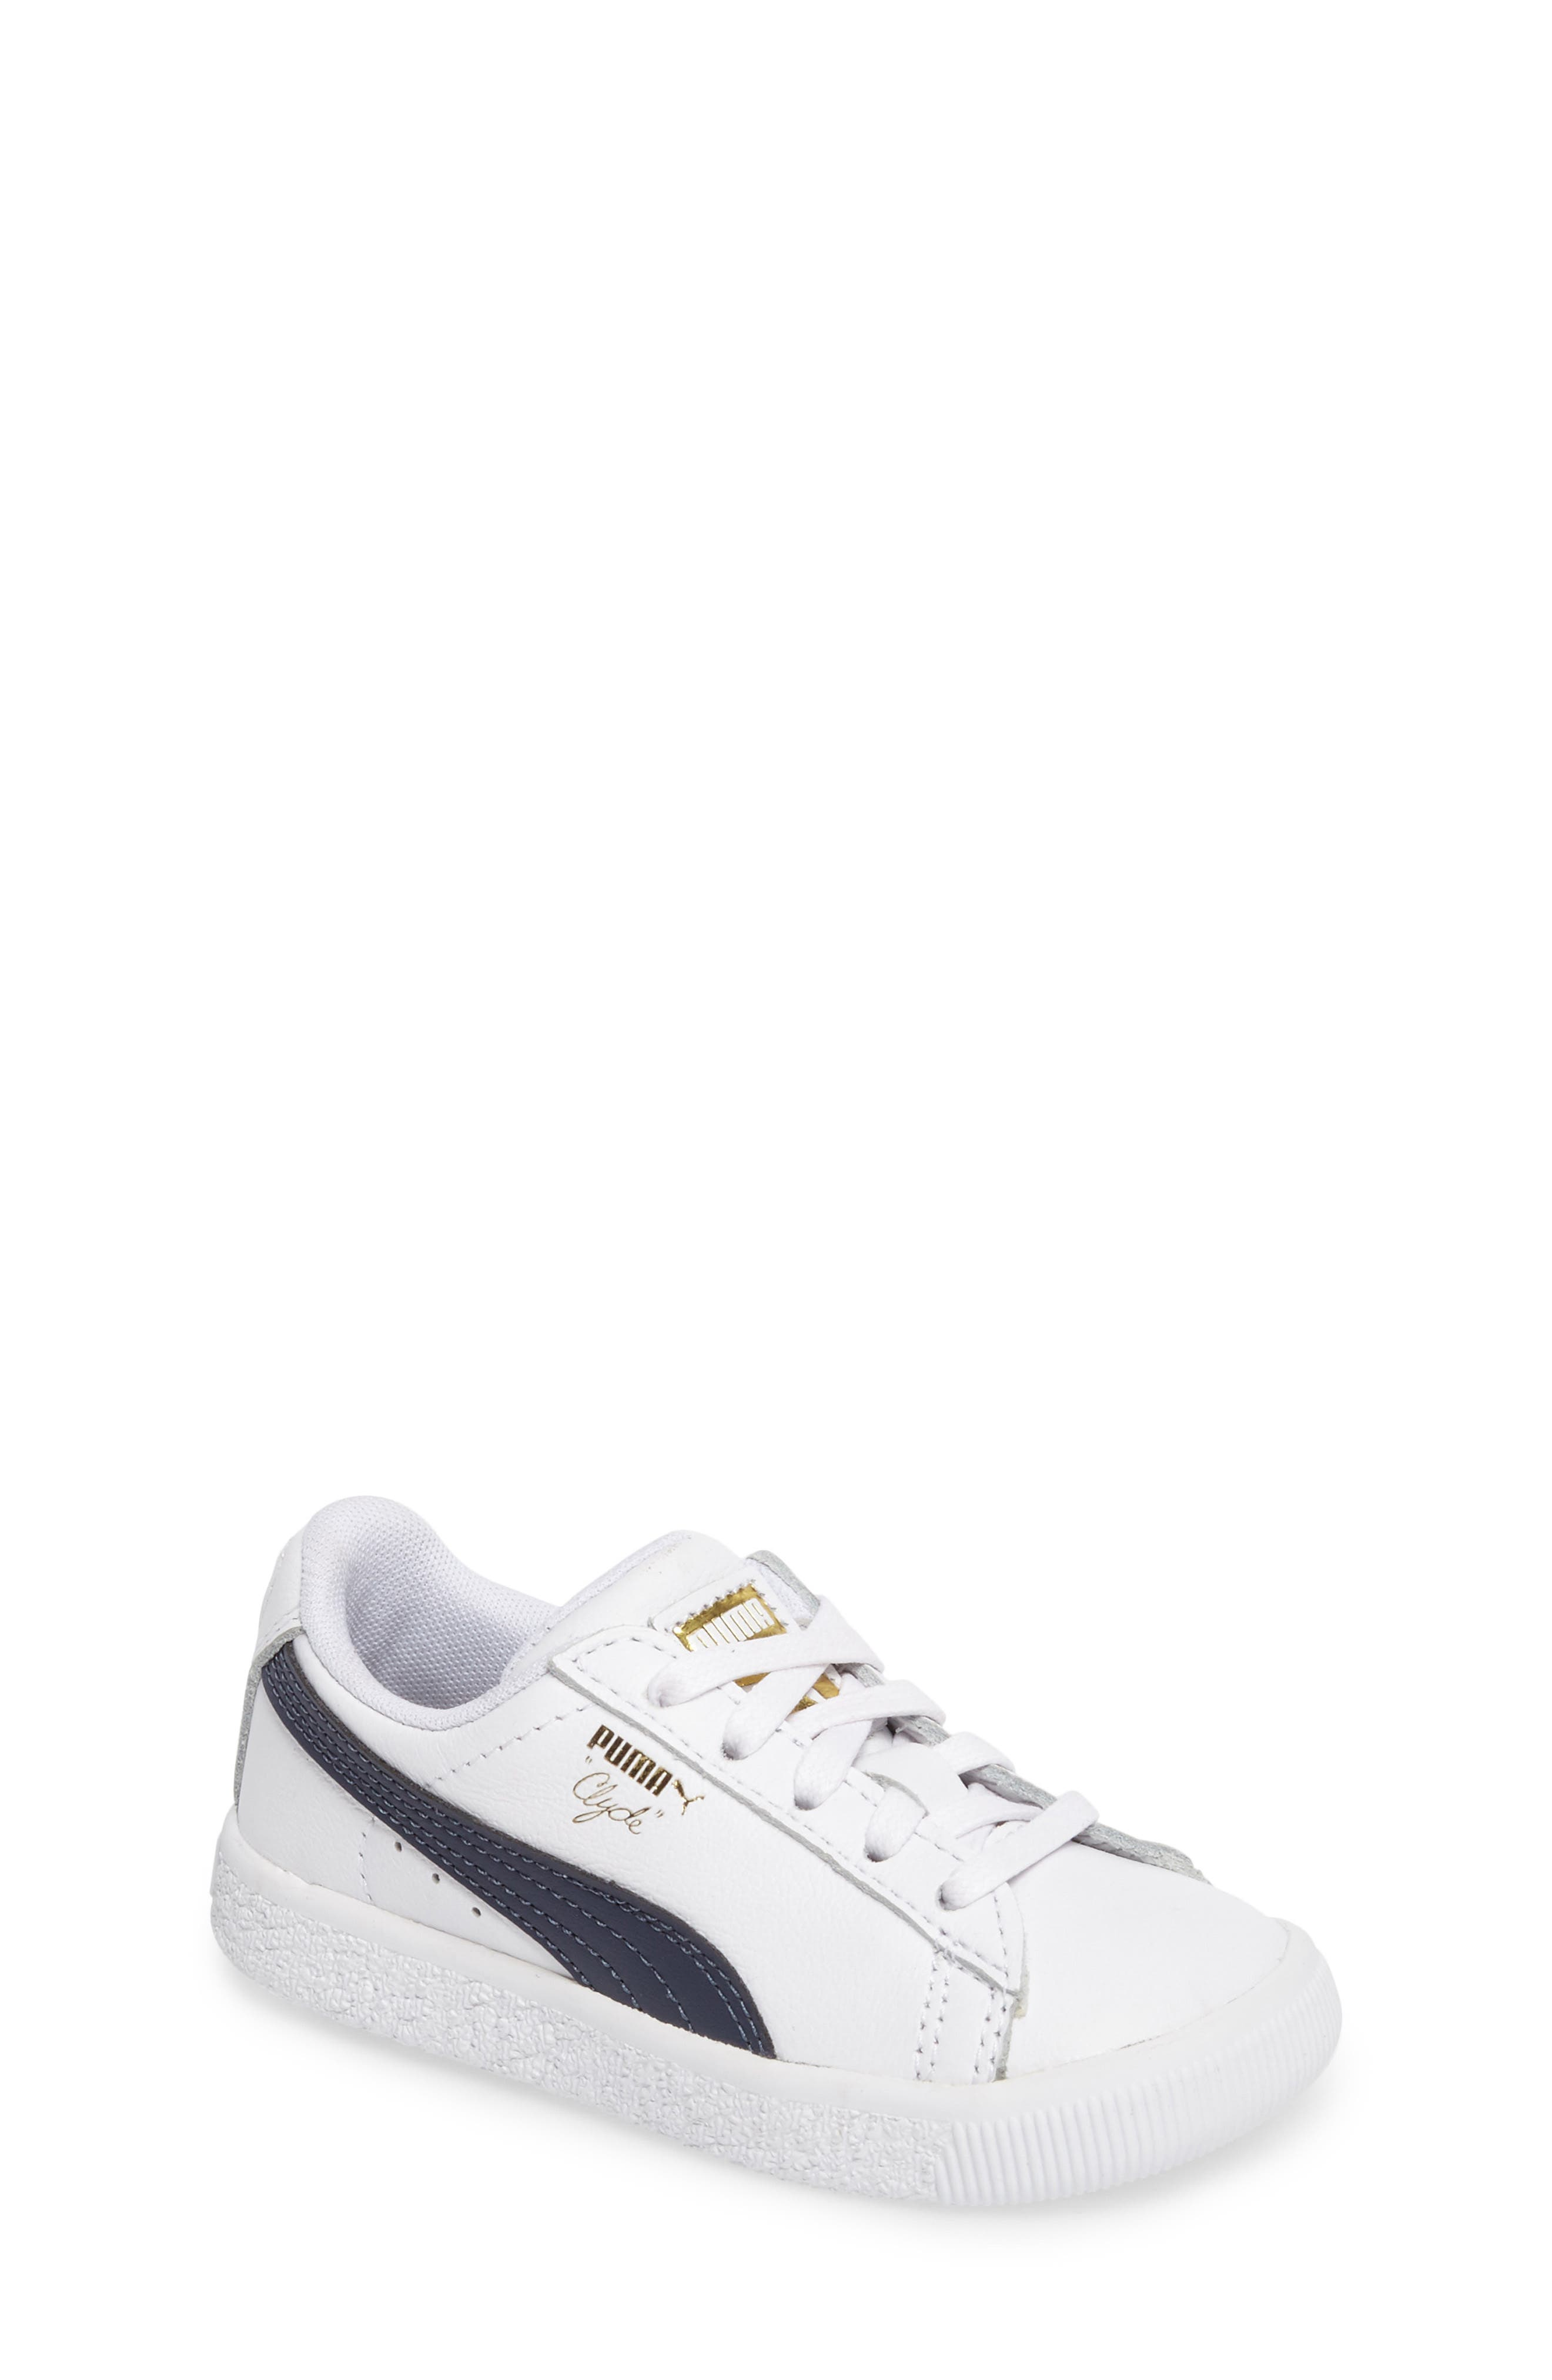 Clyde Core Foil Sneaker,                         Main,                         color, White/ Navy